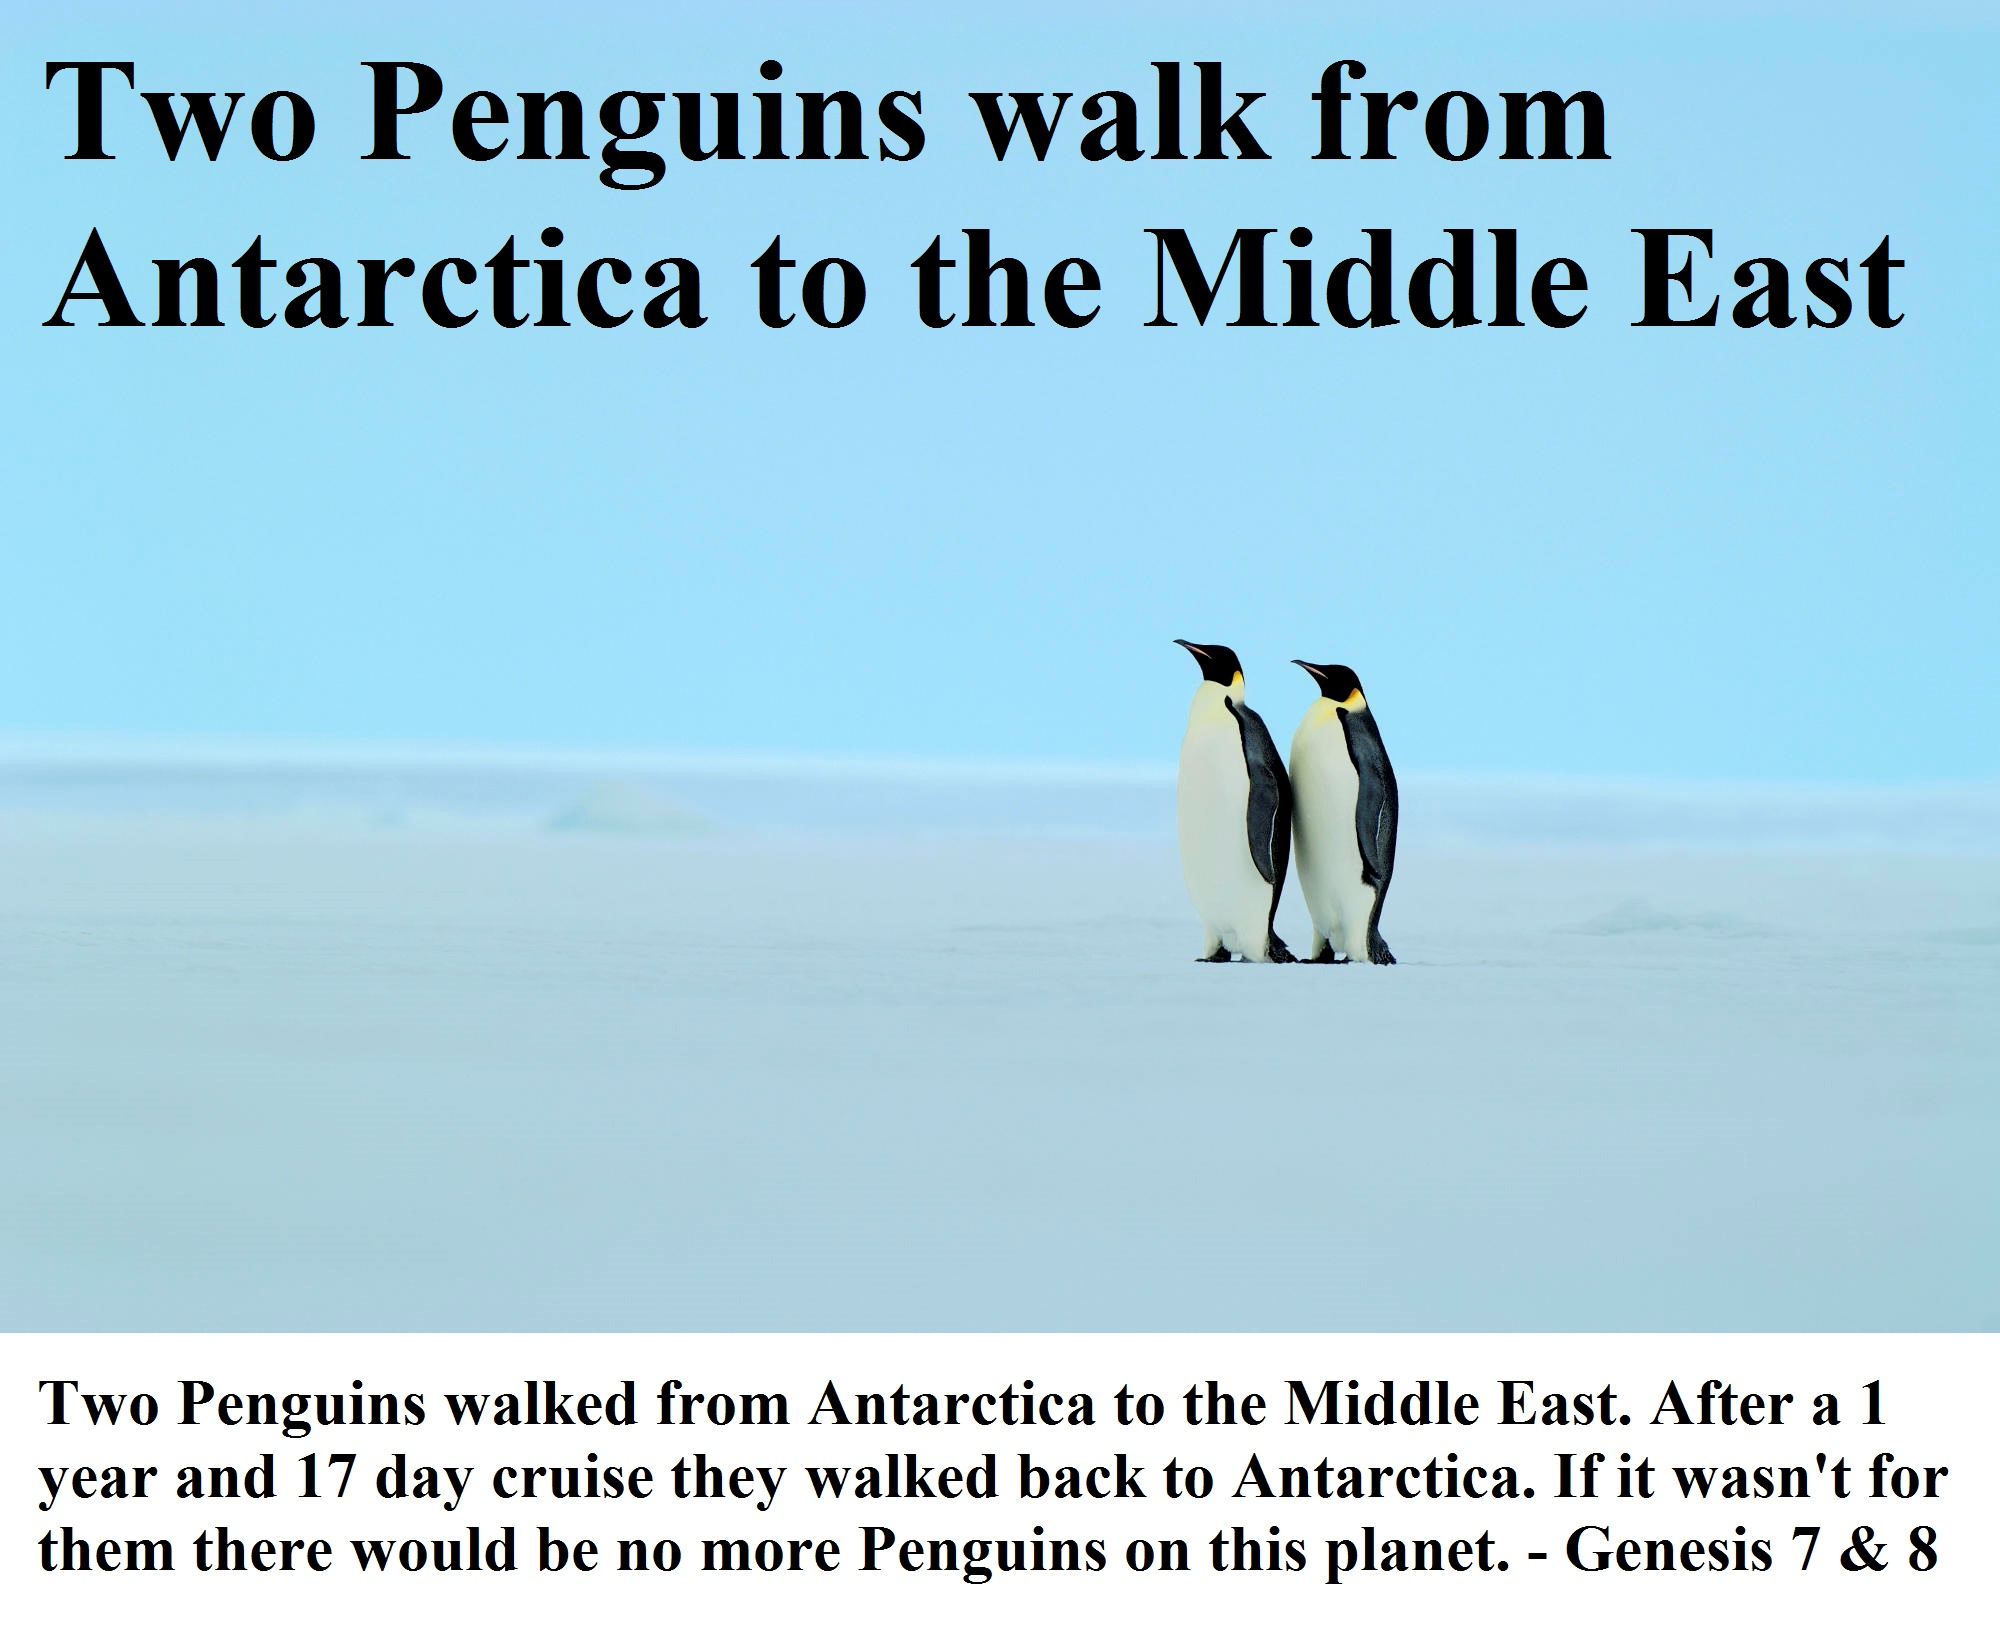 Two Penguins walked from Antarctica to the Middle East. After their 1 year and 17 day cruise they walked back to Antarctica. If it wasn't for them there would be no more Penguins on this planet. - Genesis 7 & 8